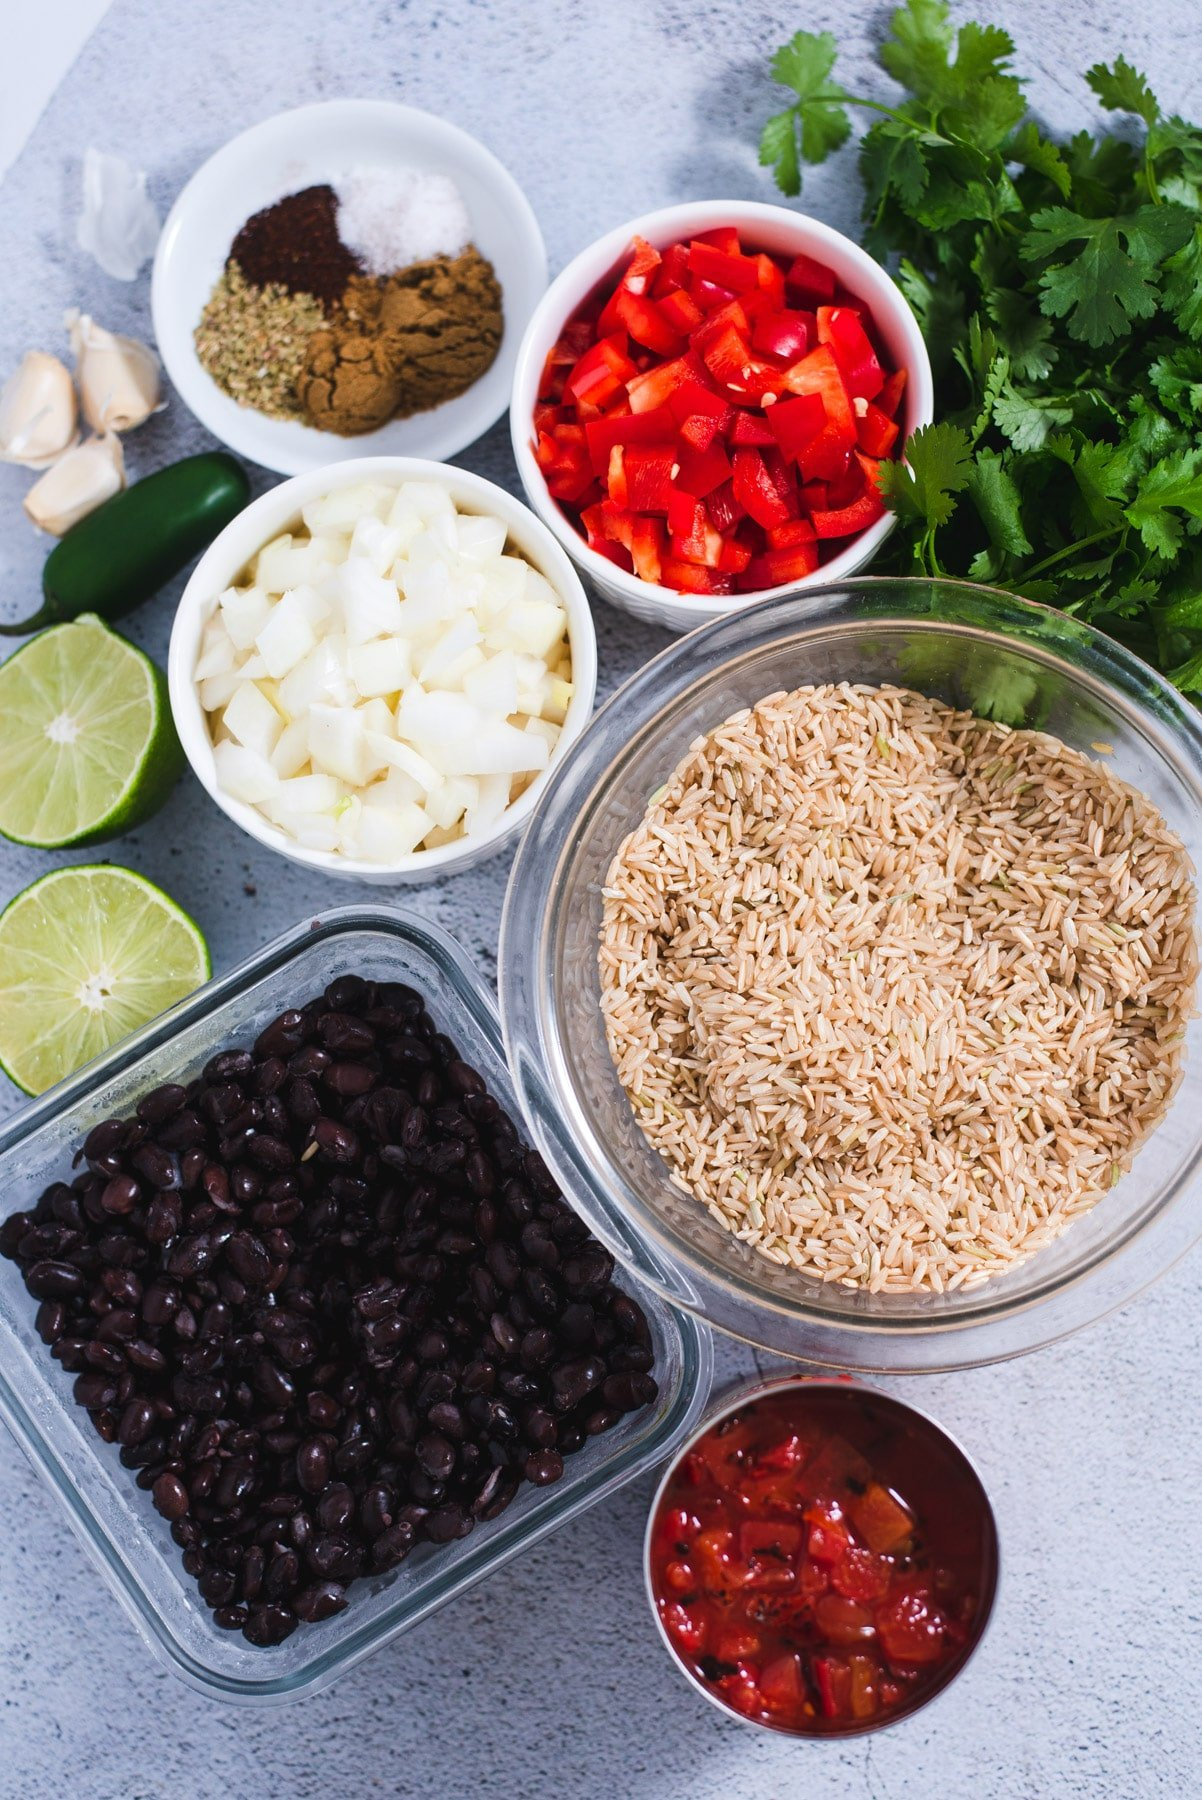 Ingredients used to make rice and beans